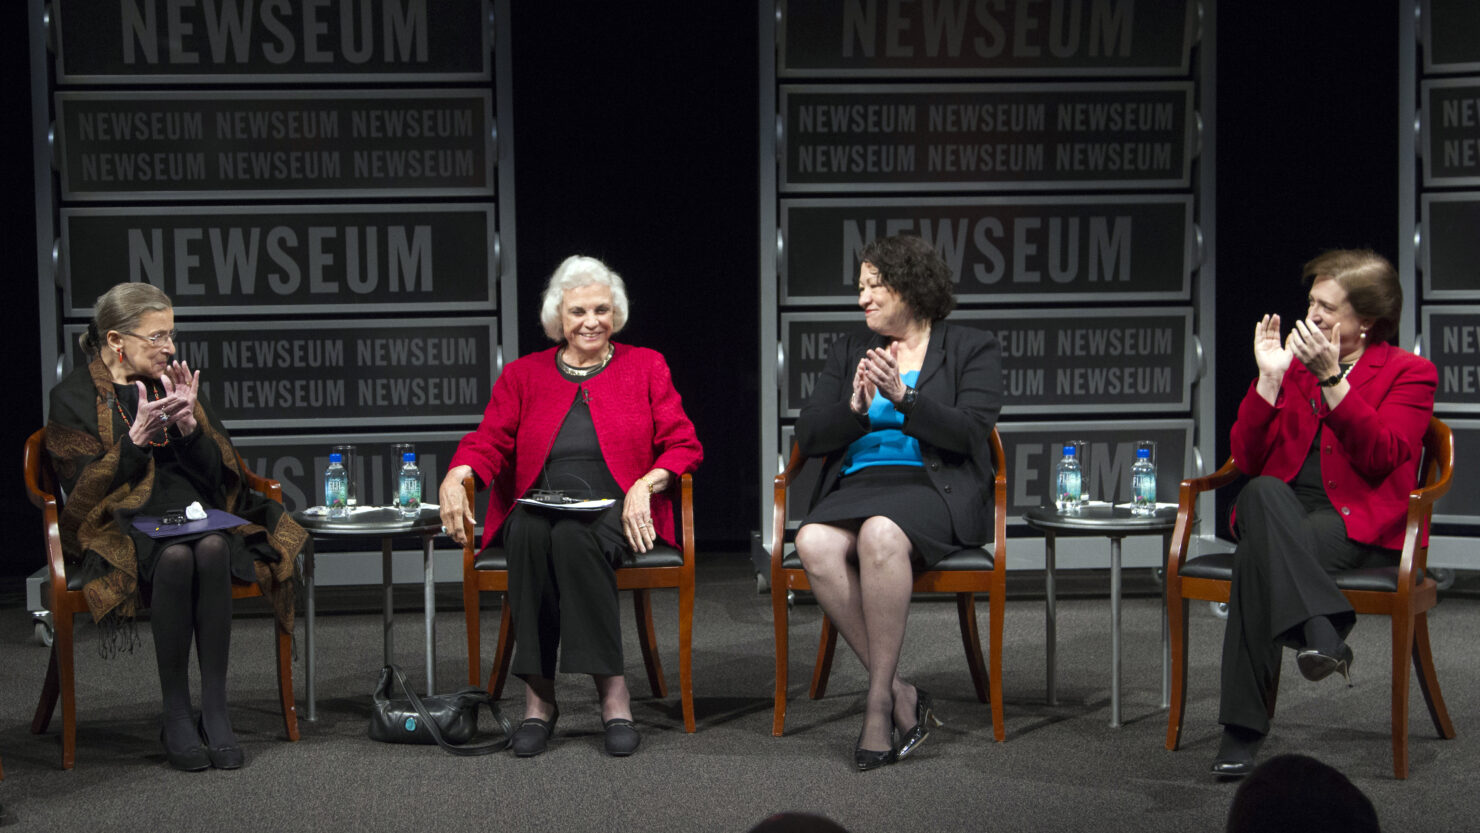 Ginsburg (left) joins the only three other women to sit on the U.S. Supreme Court — Sandra Day O'Connor, Sonia Sotomayor and Elena Kagan — in a celebration of O'Connor, the first woman justice, at the Newseum in Washington in 2012. Manuel Balce Ceneta/AP